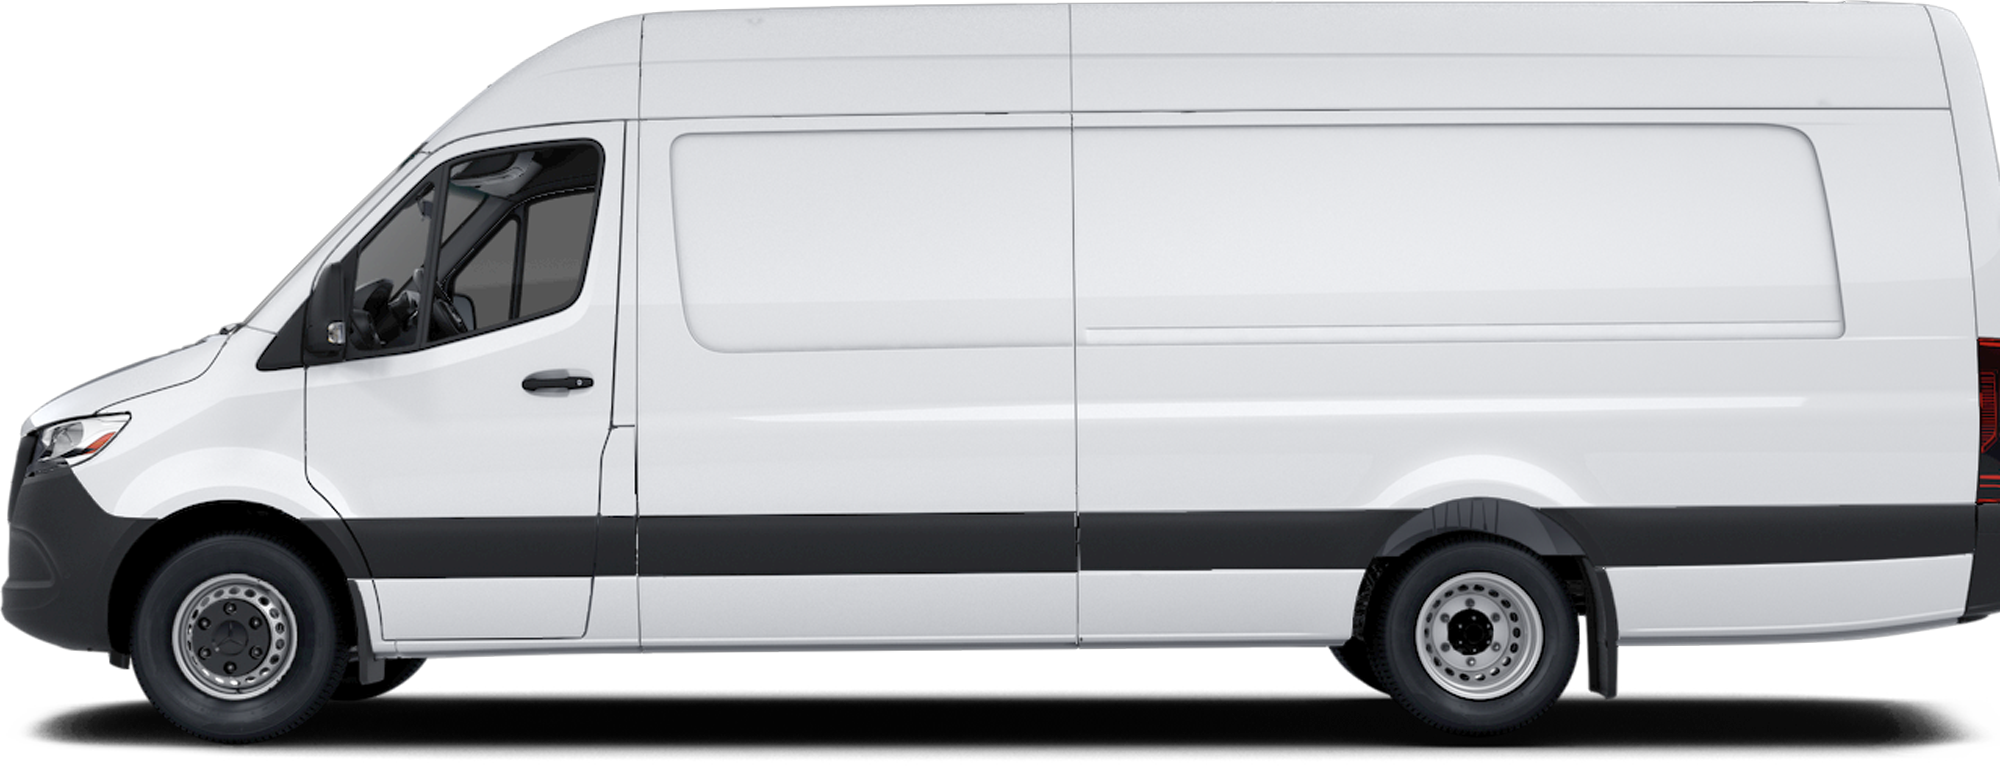 2020 Mercedes-Benz Sprinter 3500 Van High Roof V6